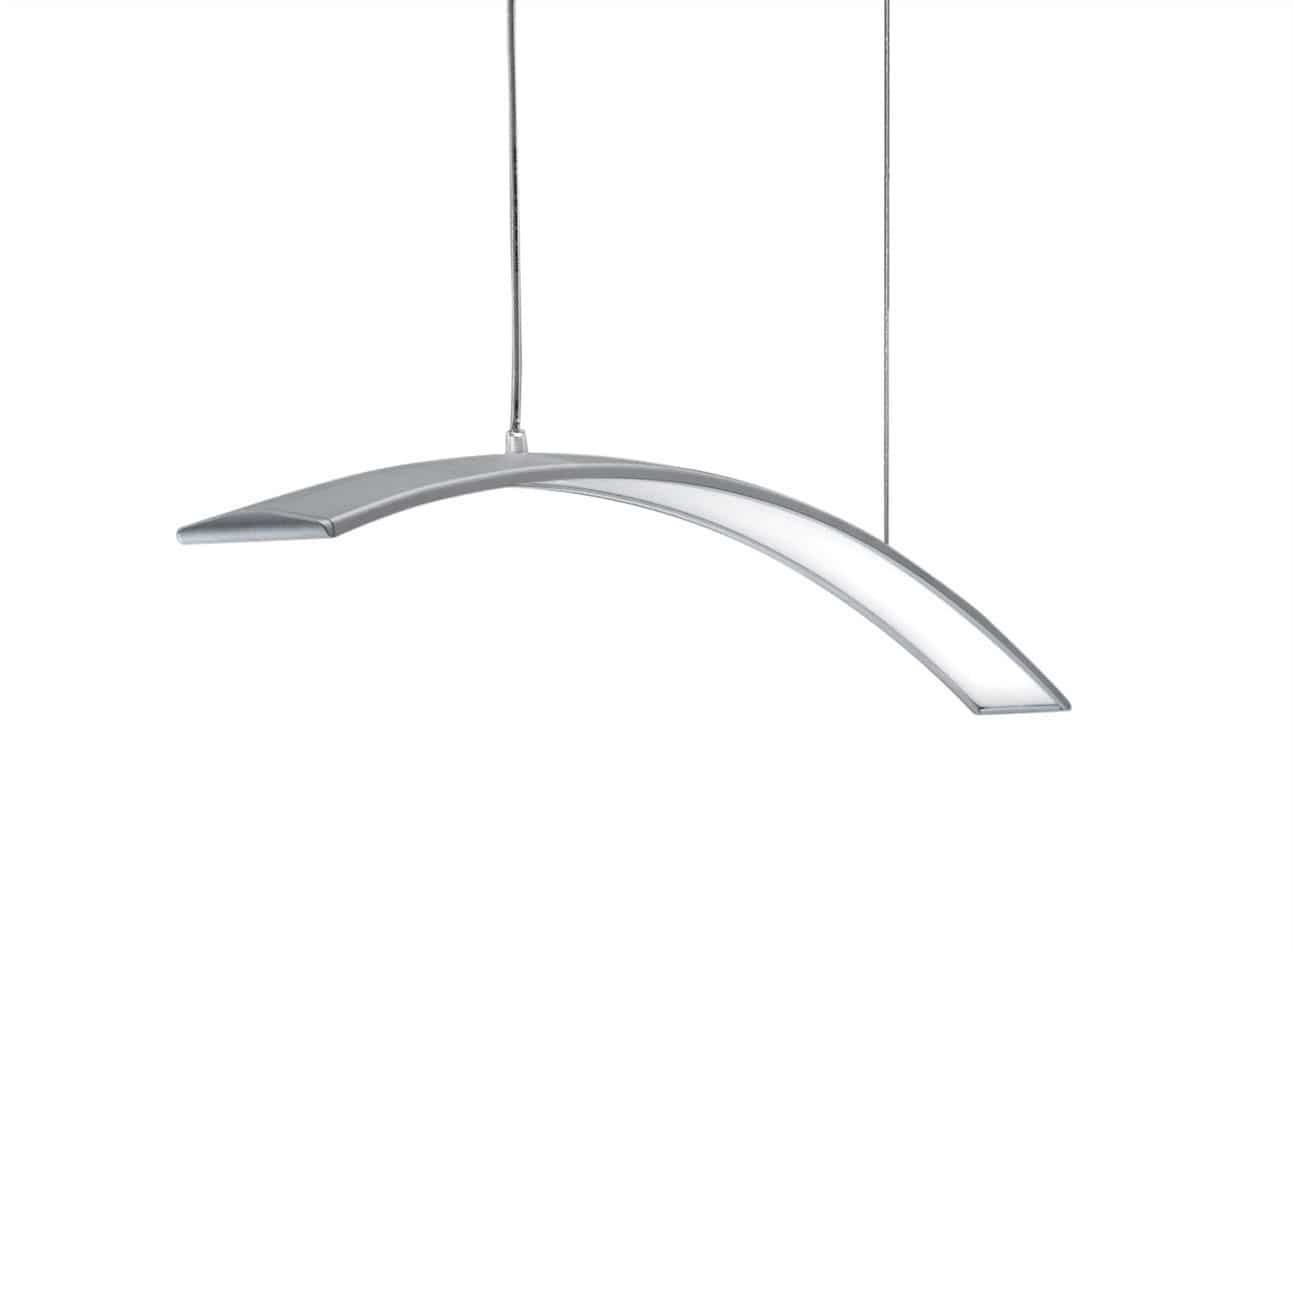 pendant led lighting fixtures. Hanging Light Fixture / LED Extruded Aluminum IP40 - SPECTRA By D\u0027Alesio \u0026 Santoro Pendant Led Lighting Fixtures E